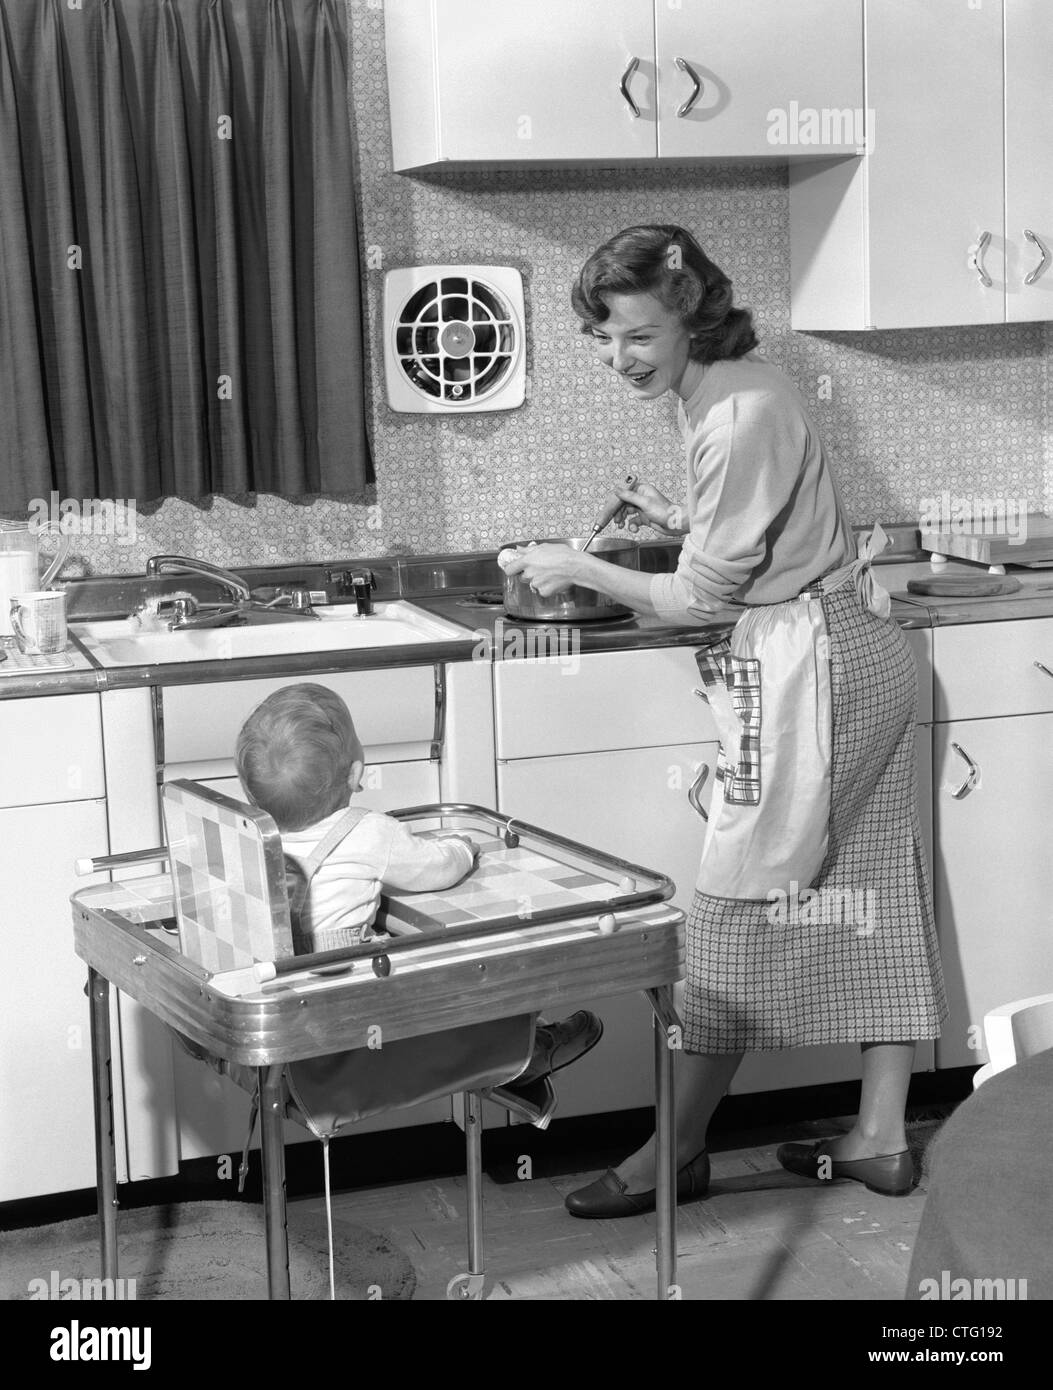 1950s WOMAN MOTHER IN HOME KITCHEN COOKING POT ON STOVE SMILING AT BABY  CHILD IN HIGH CHAIR 07e1eb8b27